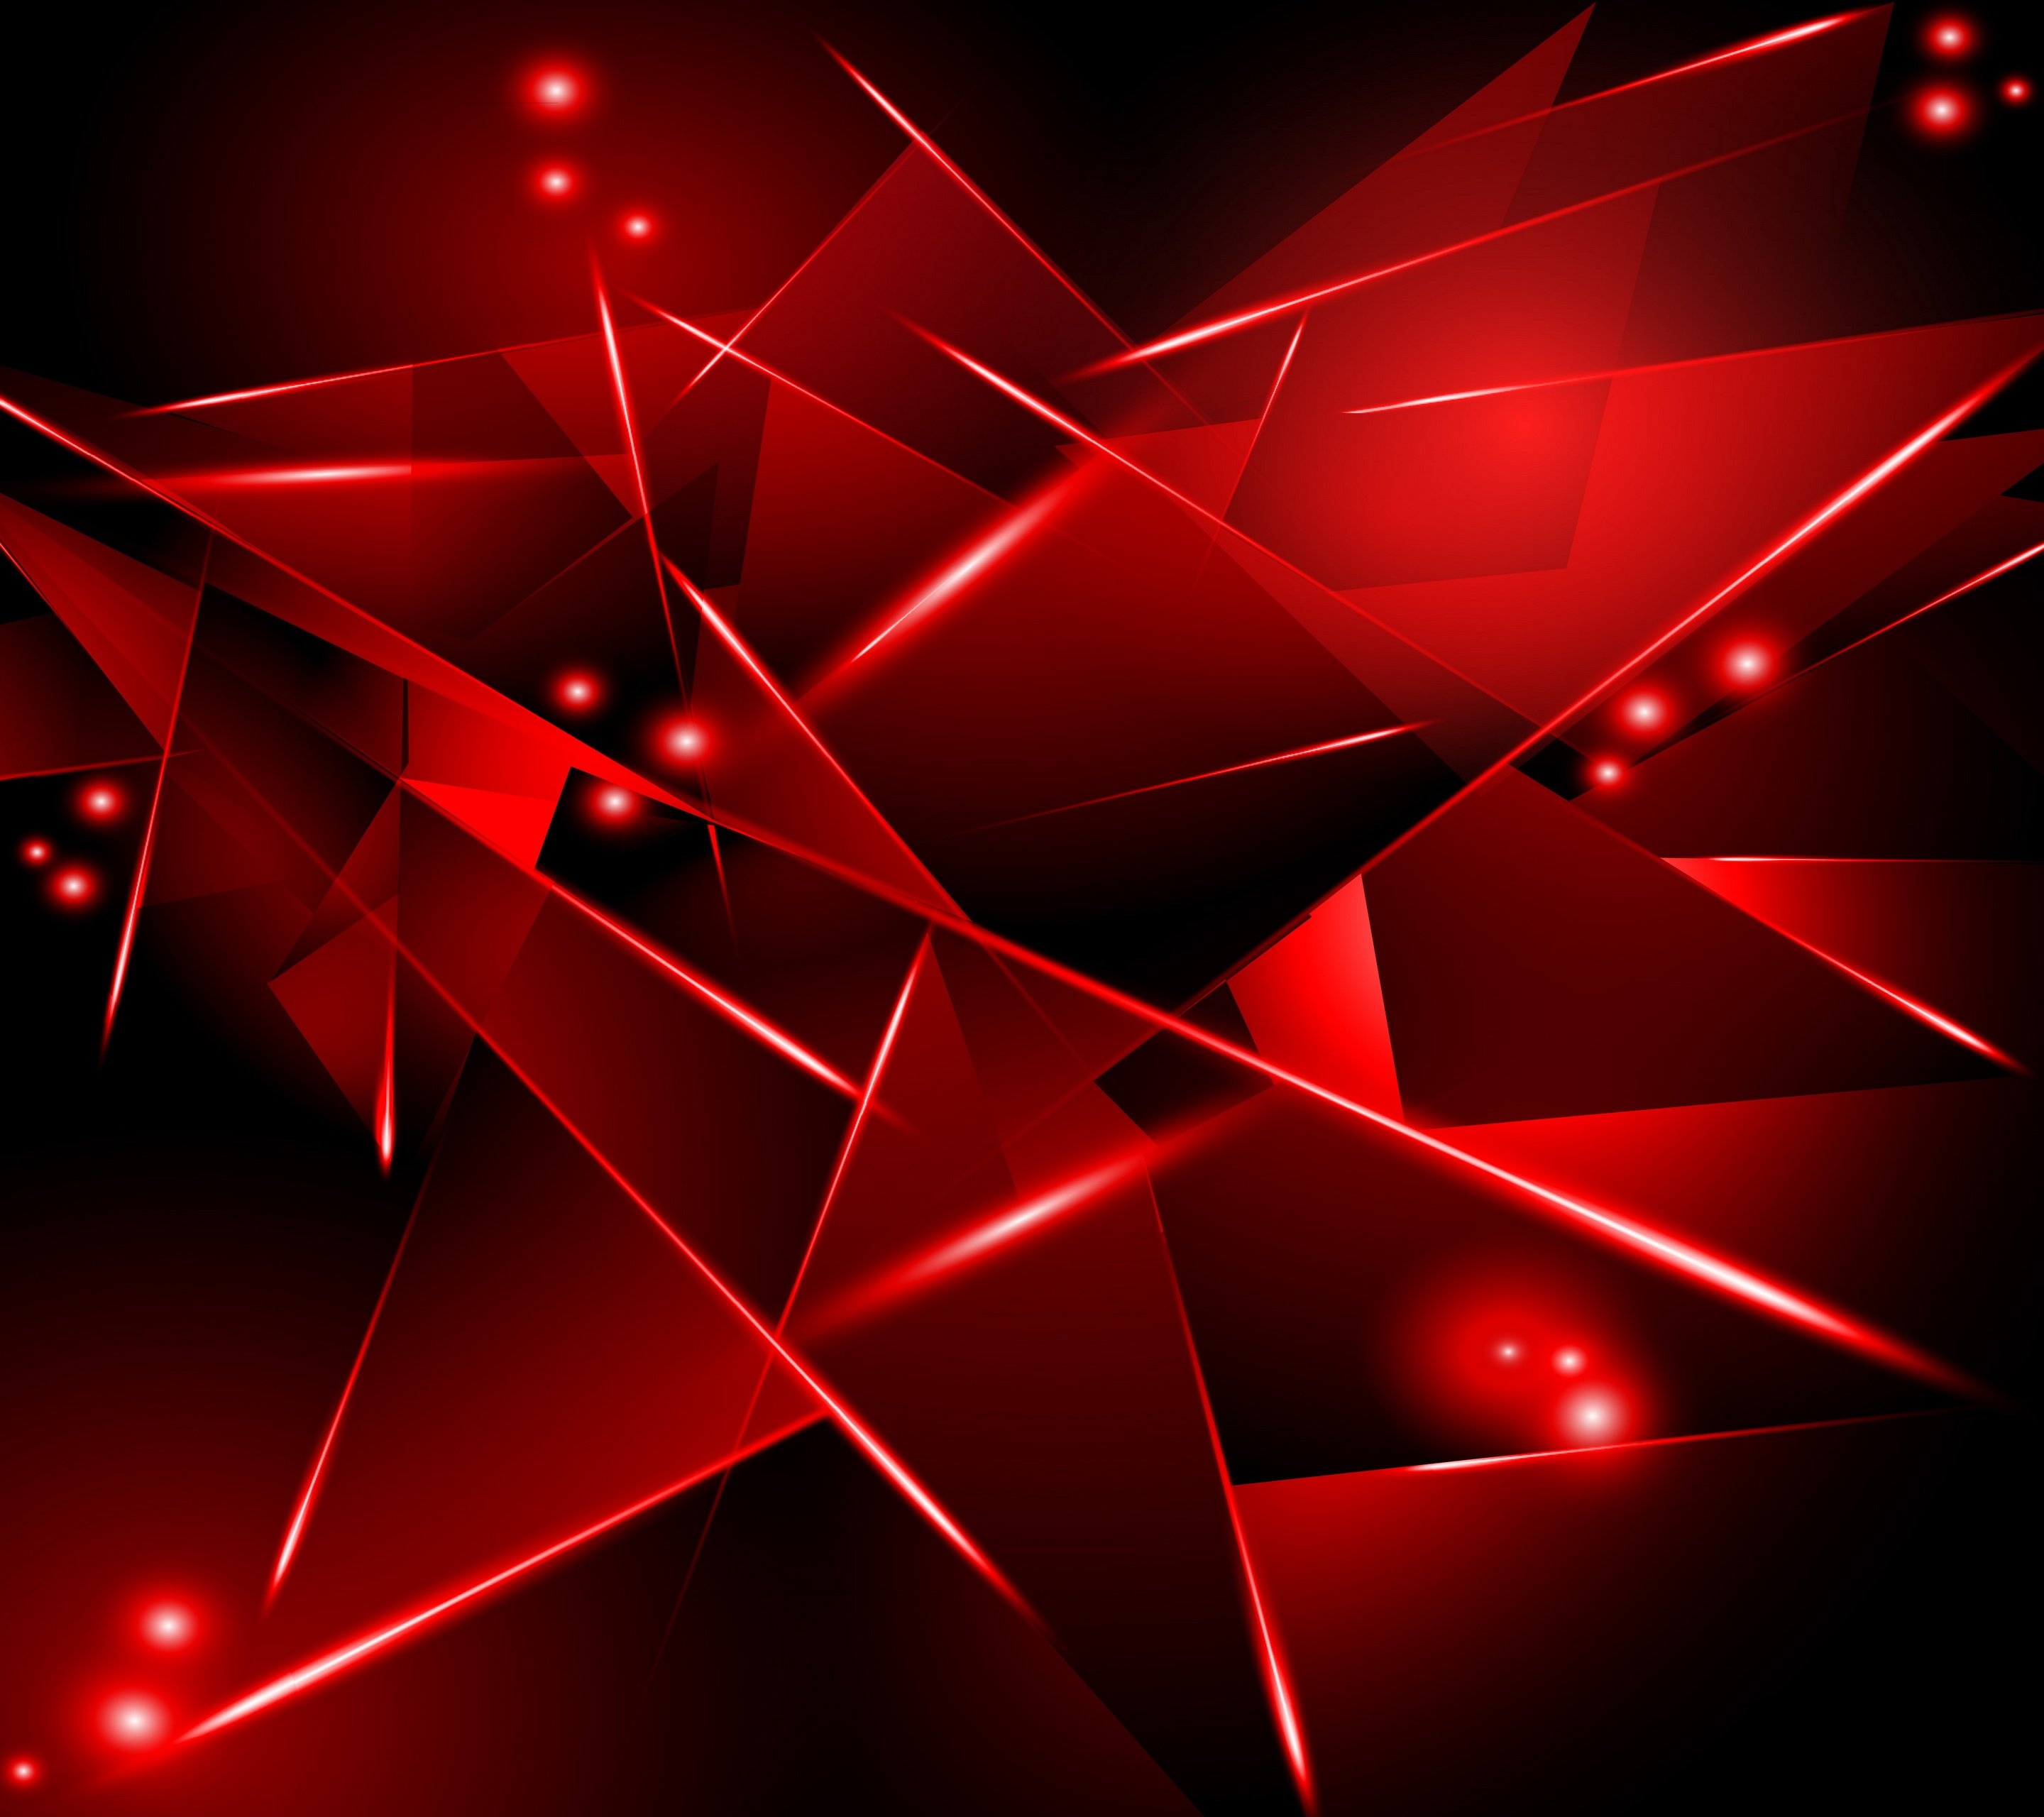 Red Abstract-wallpaper-10381709 wallpaper | 2880x2560 | 624913 ...